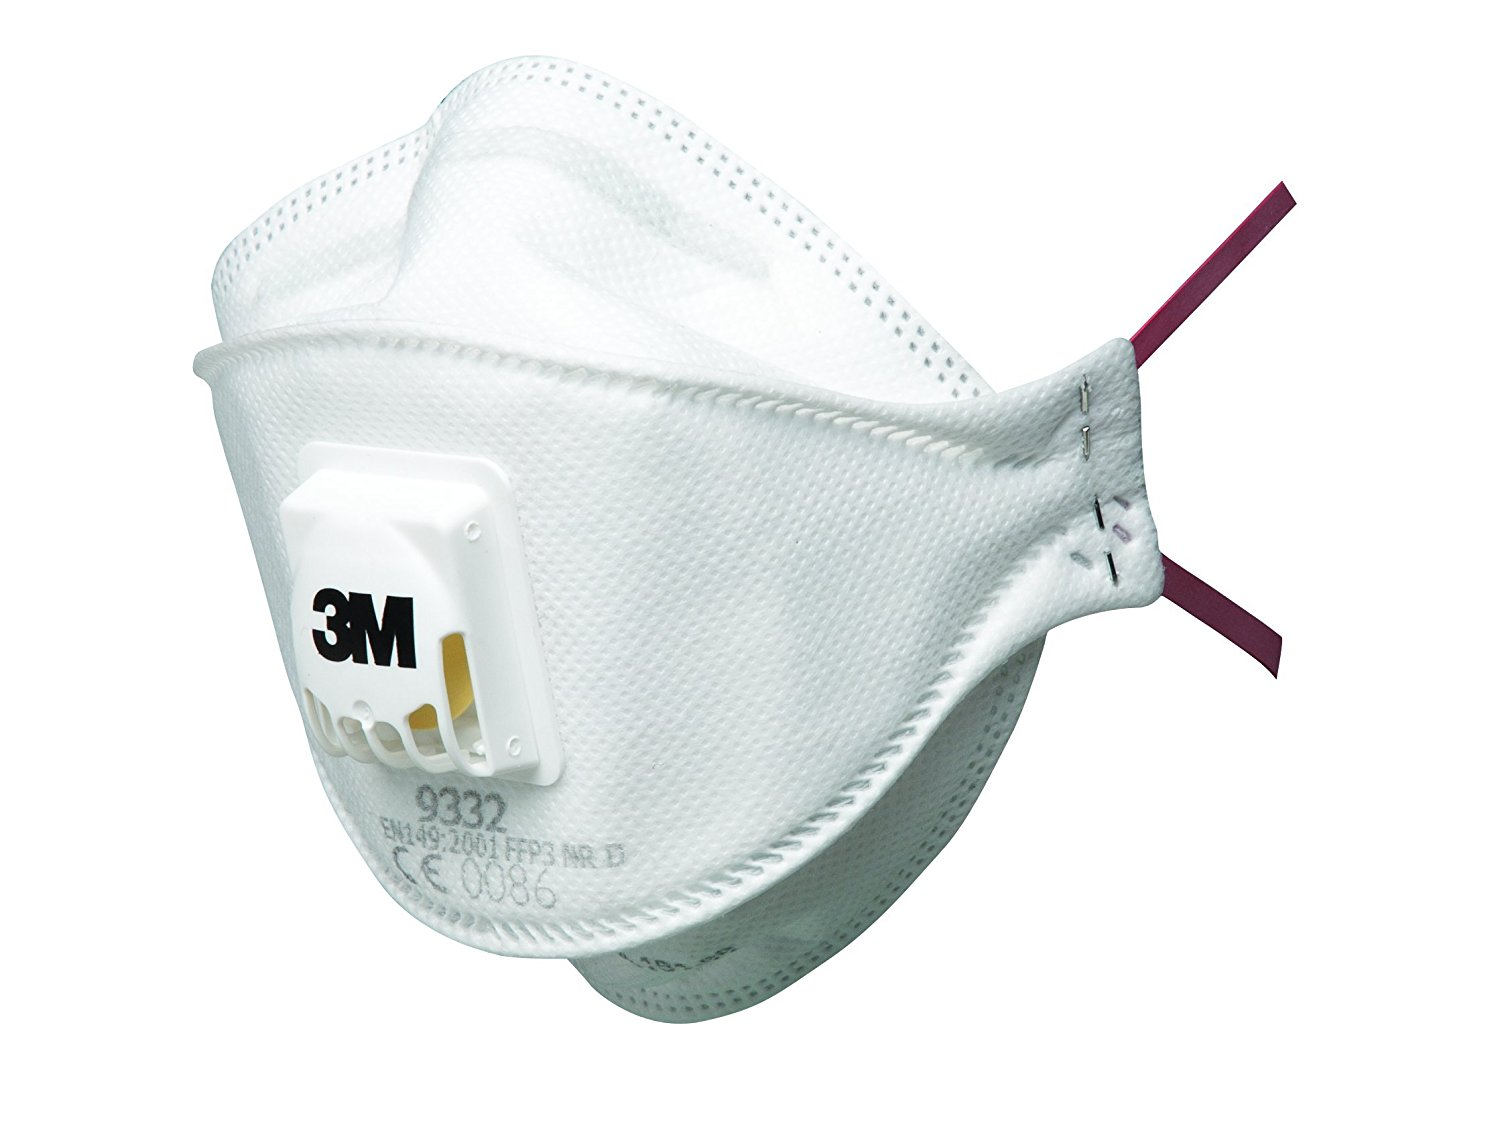 Respiratory Equipment 3M 9332 FFP3 Disposable Valved Face Mask